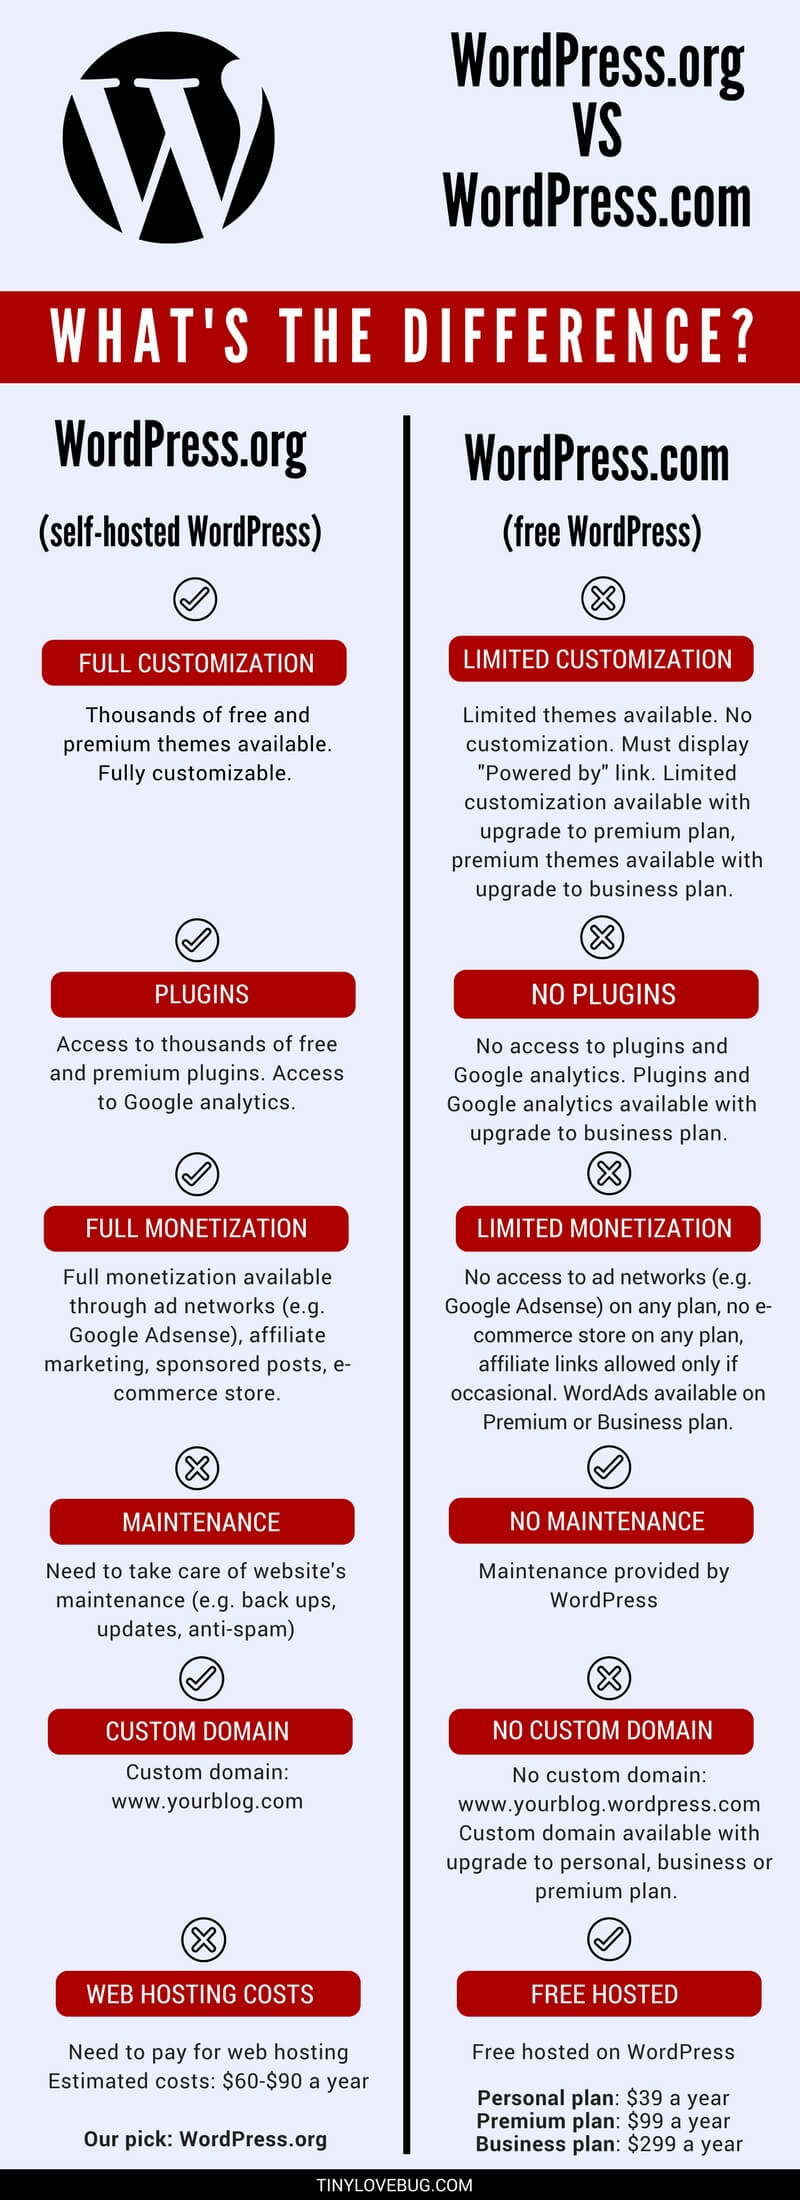 difference between WordPress.org and WordPress.com infographic